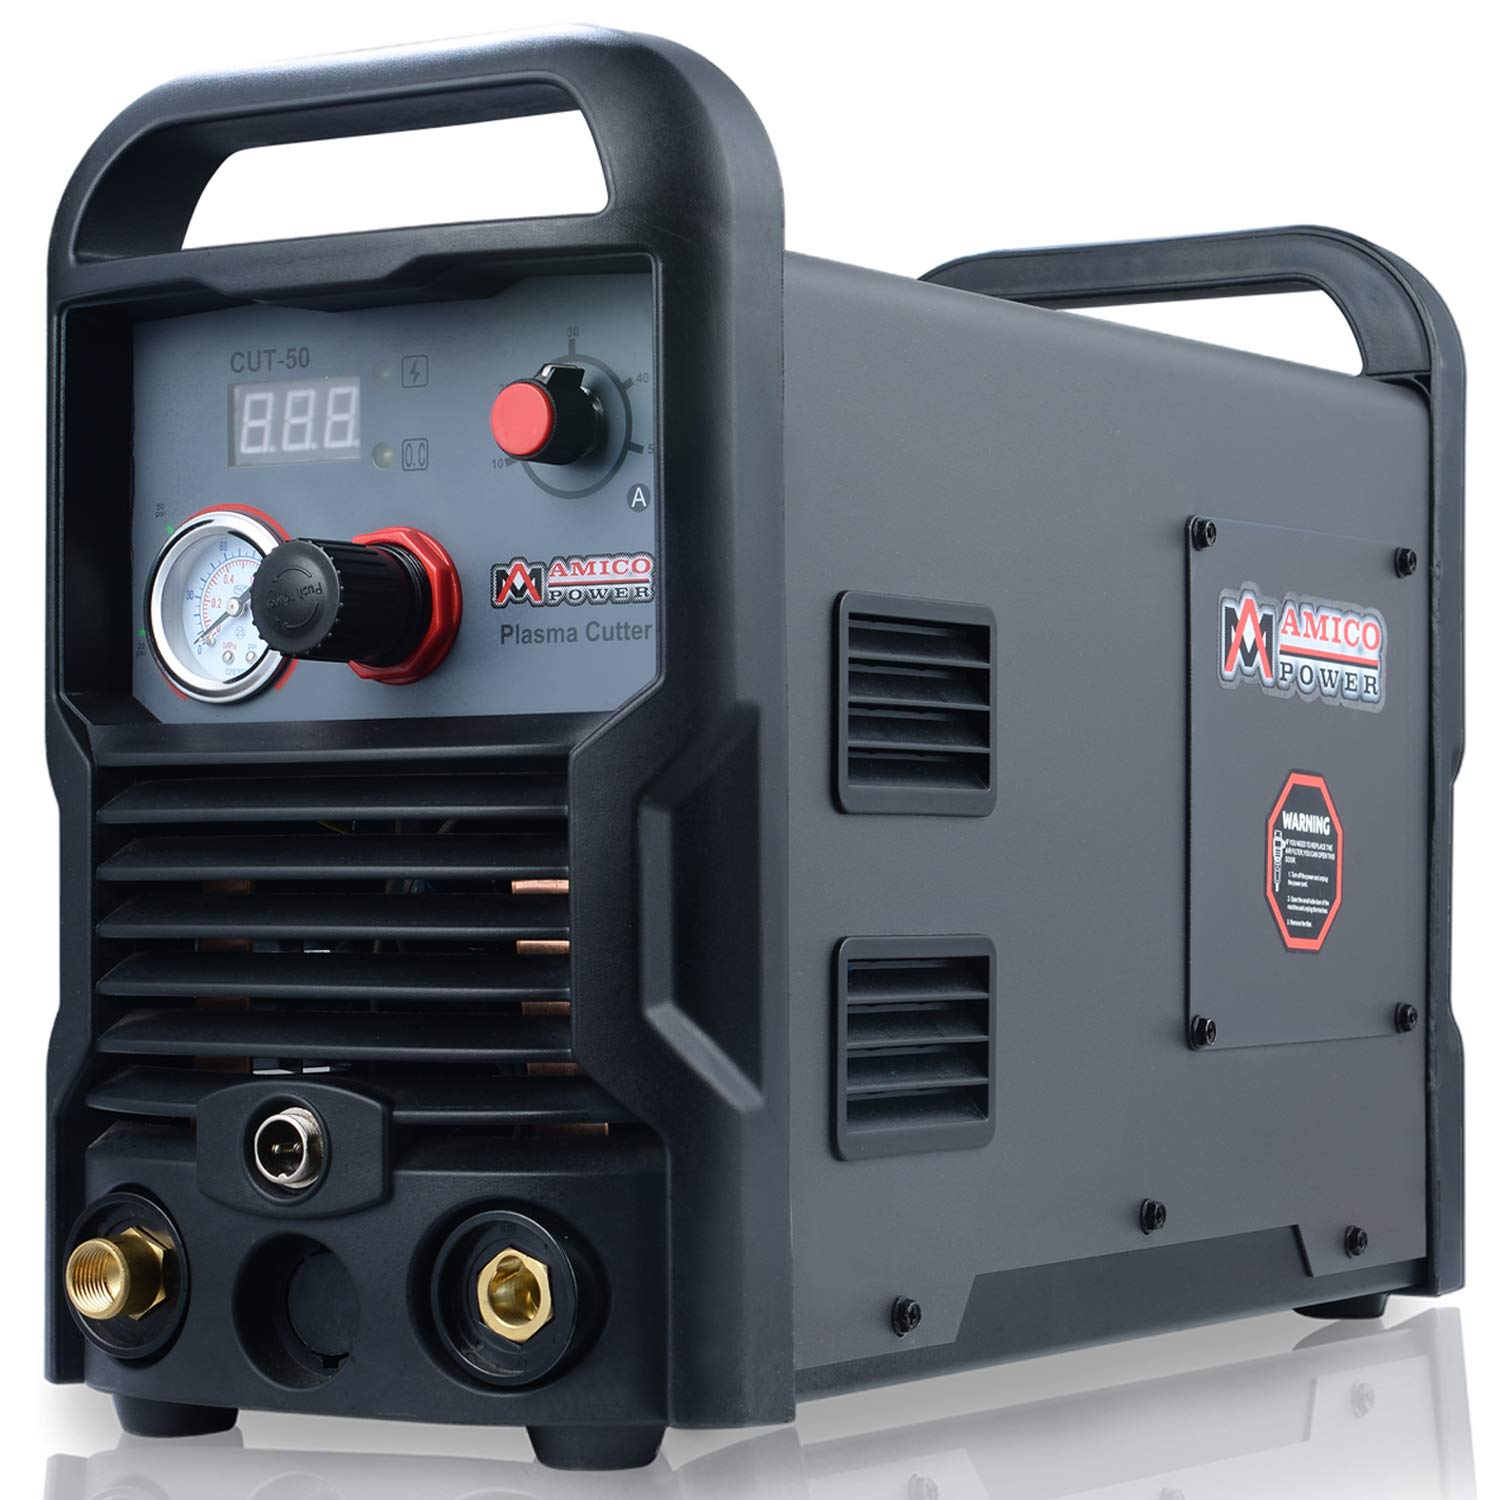 Best Plasma Cutters (Review & Buying Guide) in 2020 - The ...